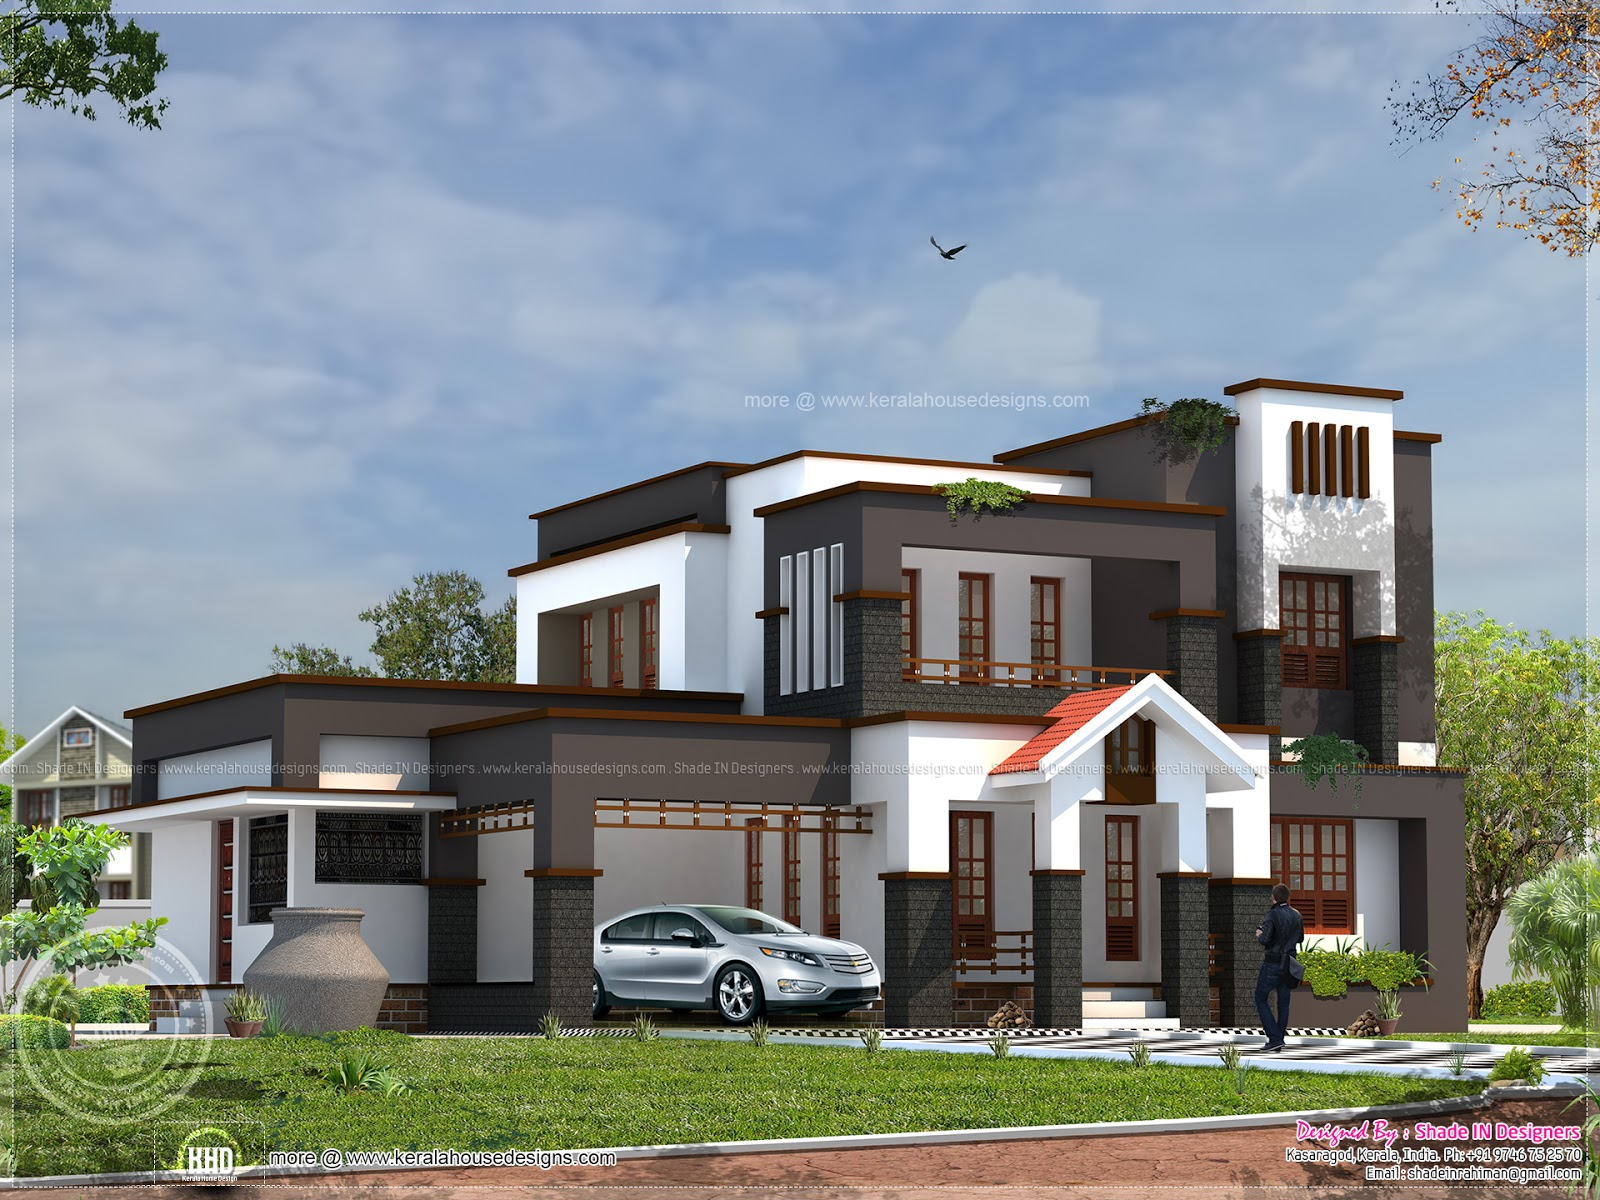 House design for 60 square meter - 232 Square Meter 5 Bedroom House Exterior